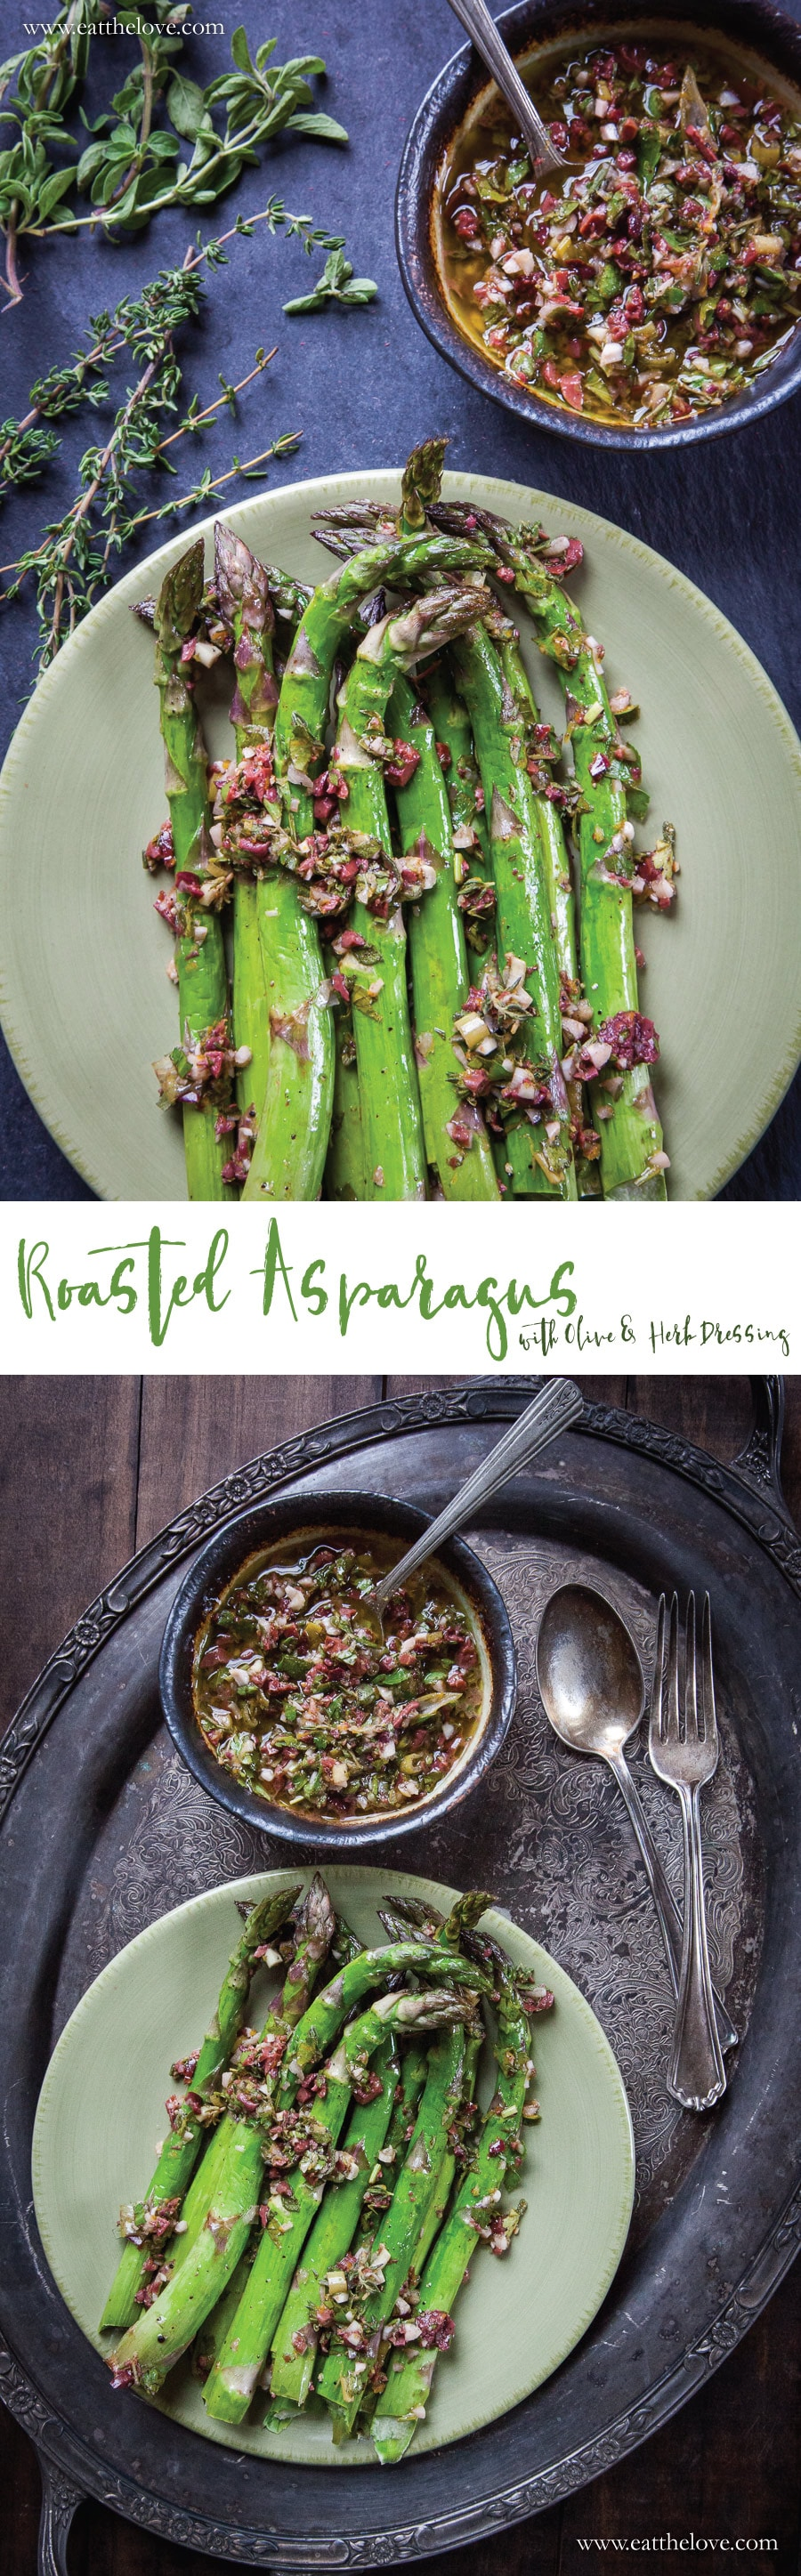 Roasted Asparagus with Olive and Herb Dressing. An easy and fast vegetable side dish that happens to be gluten free and vegan as well! Photo and recipe by Irvin Lin of Eat the Love.